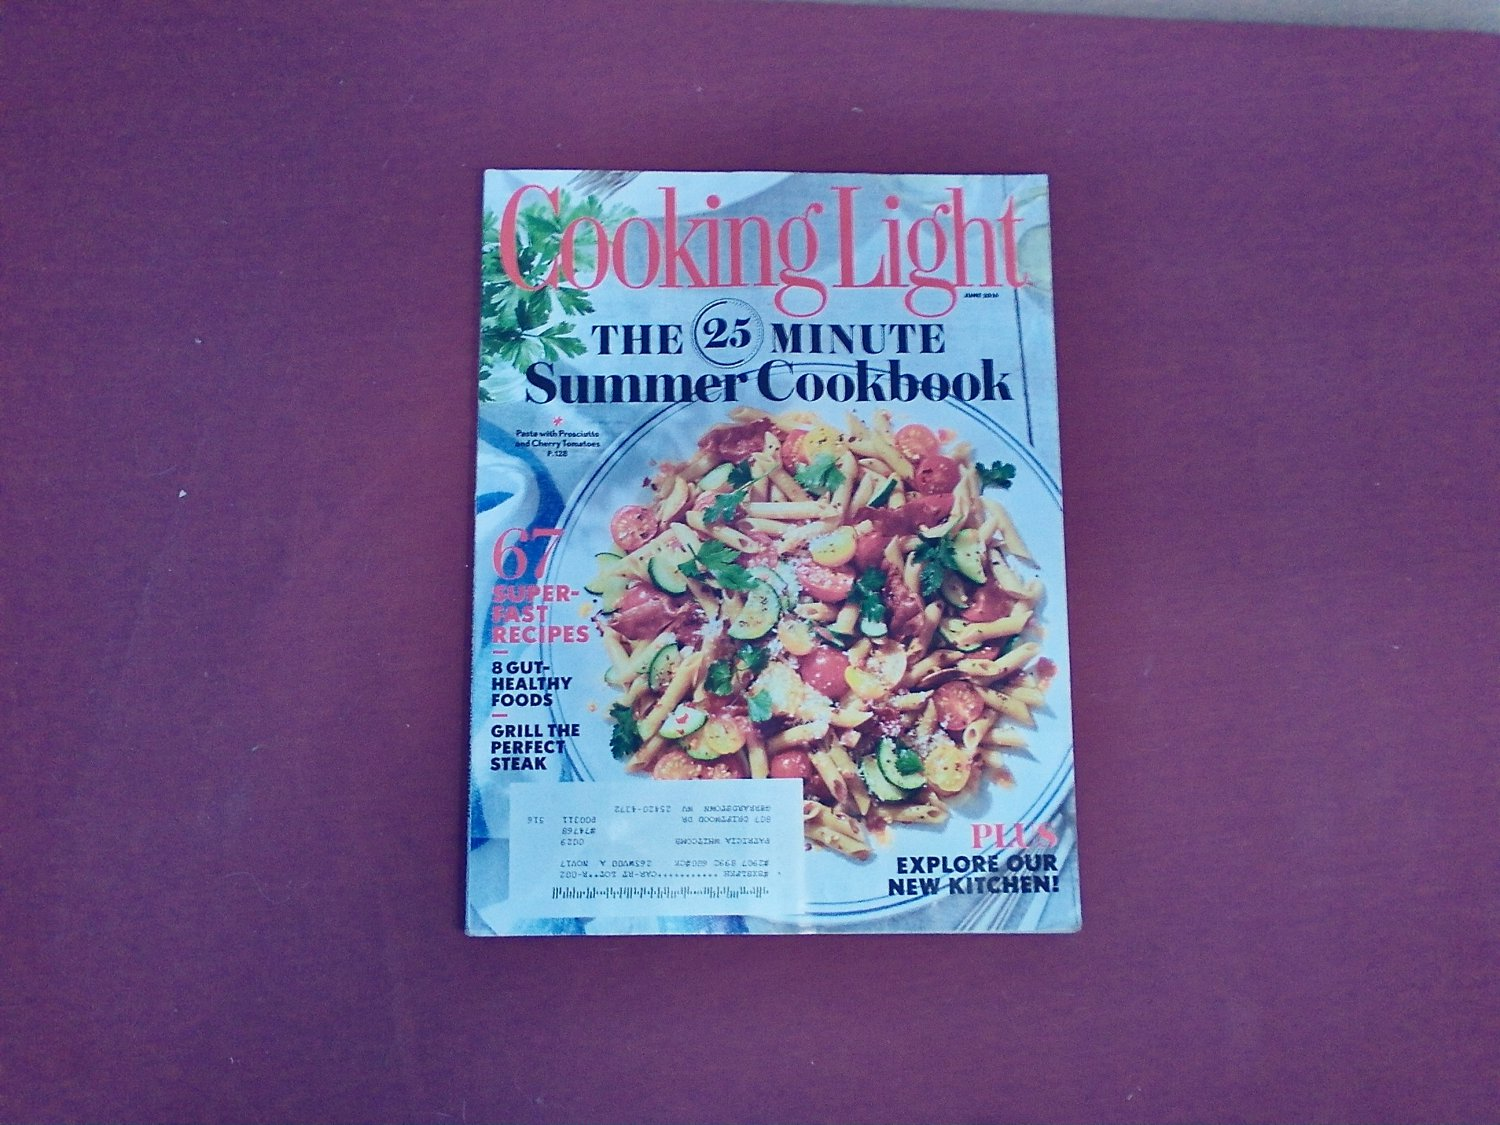 Cooking Light June 2016 Vol. 30 No. 5 - The 25 Minute Summer Cookbook (G1)